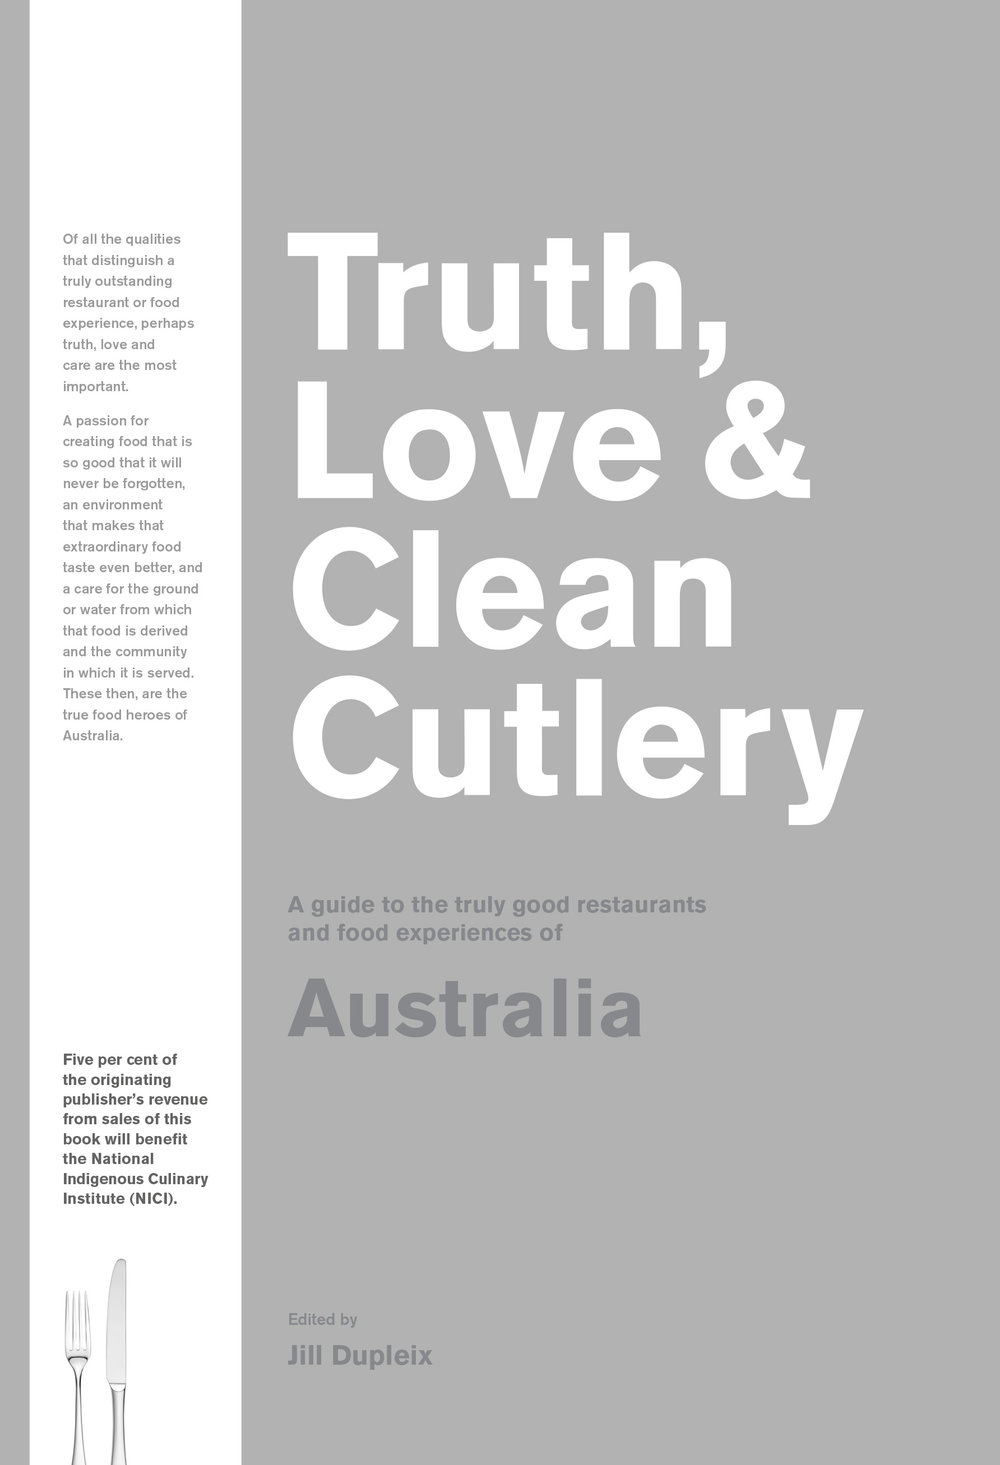 - Truth, Love & Clean Cutlery: A guide to the truly good restaurants and food experiences of Australia, Edited by Jill Dupleix (Blackwell & Ruth, $34.99) is available in/on all good bookstores with the series also offering guides to the United Kingdom, USA, and a World edition that includes 45 different countries.